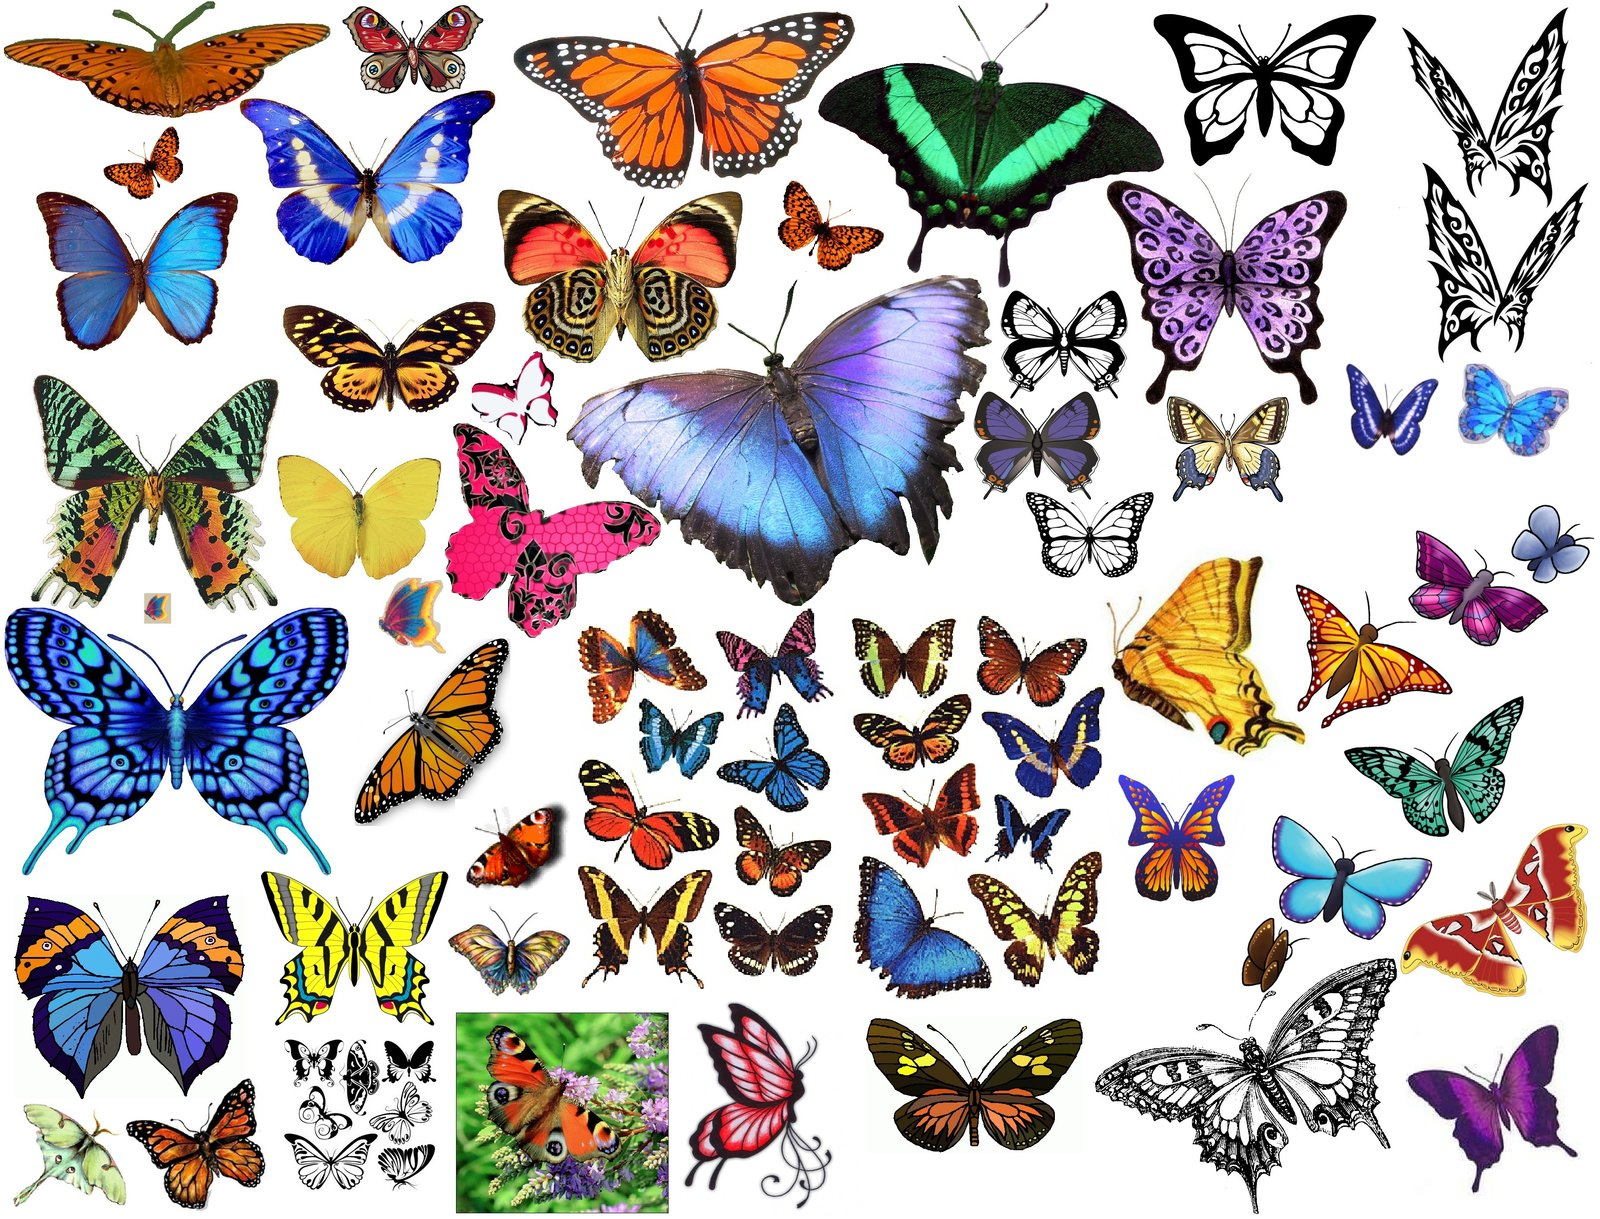 butterfly clipart images giant collage of butterflies